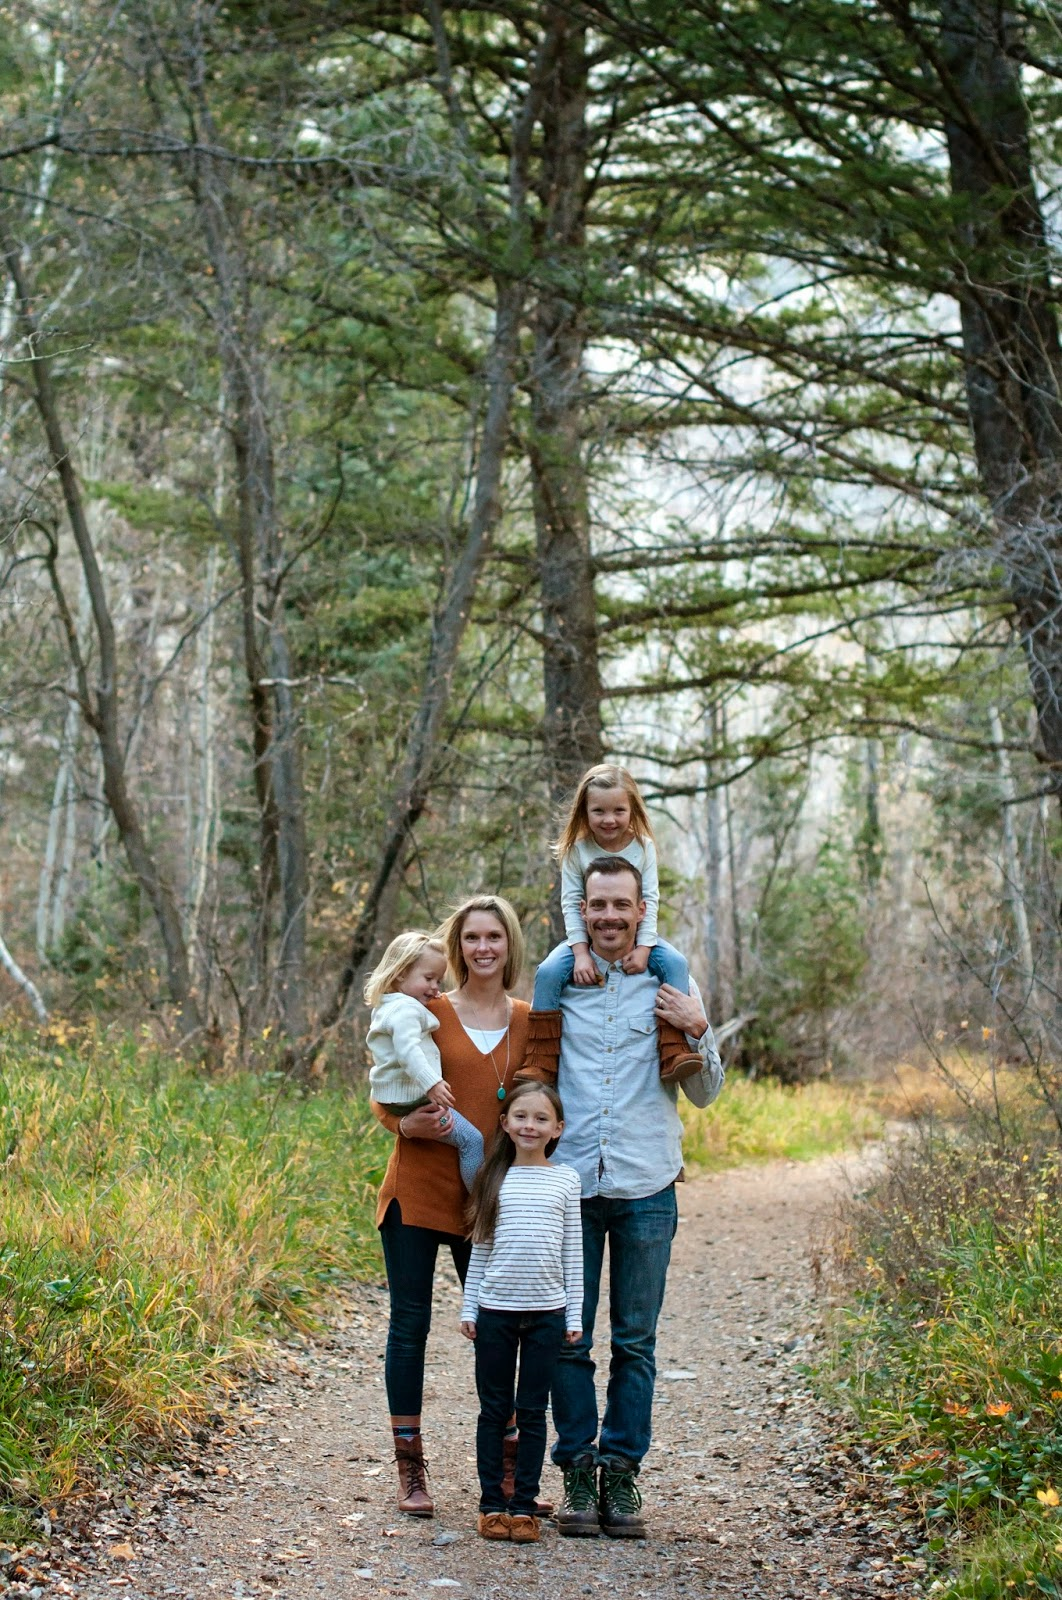 Utah Family Photography Luczakphotography.com